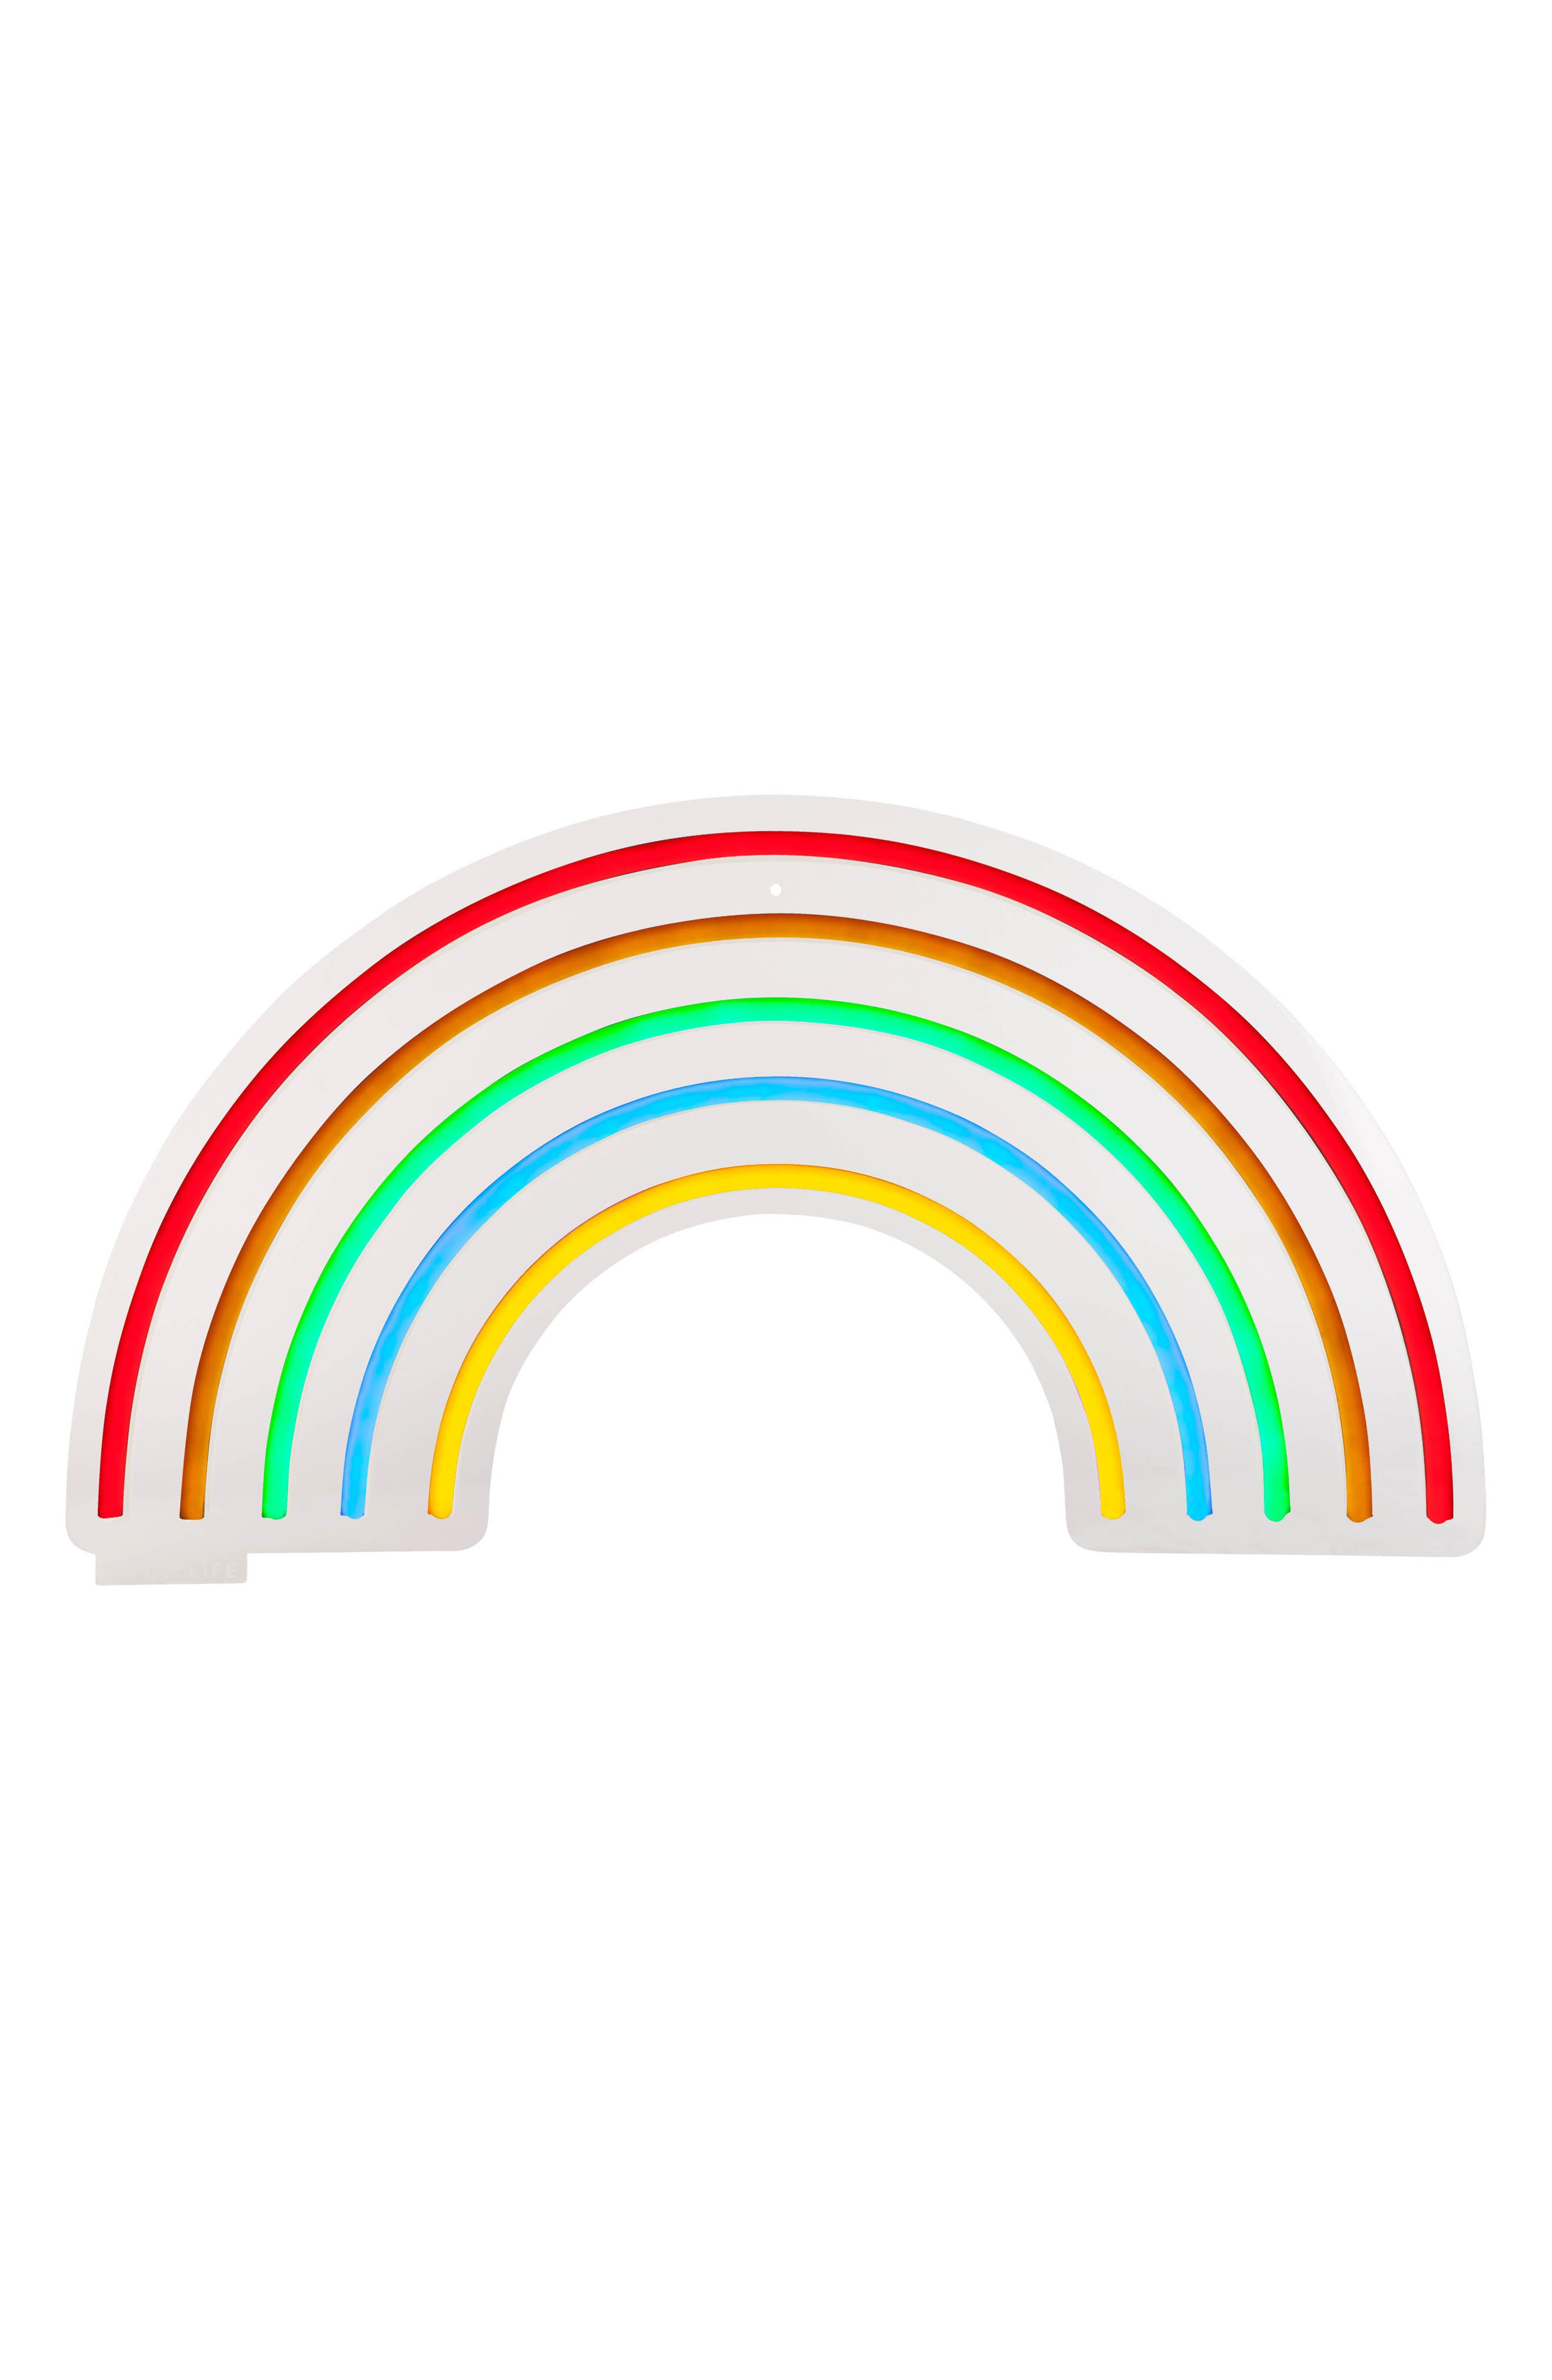 Rainbow Neon LED Wall Light,                             Main thumbnail 1, color,                             100